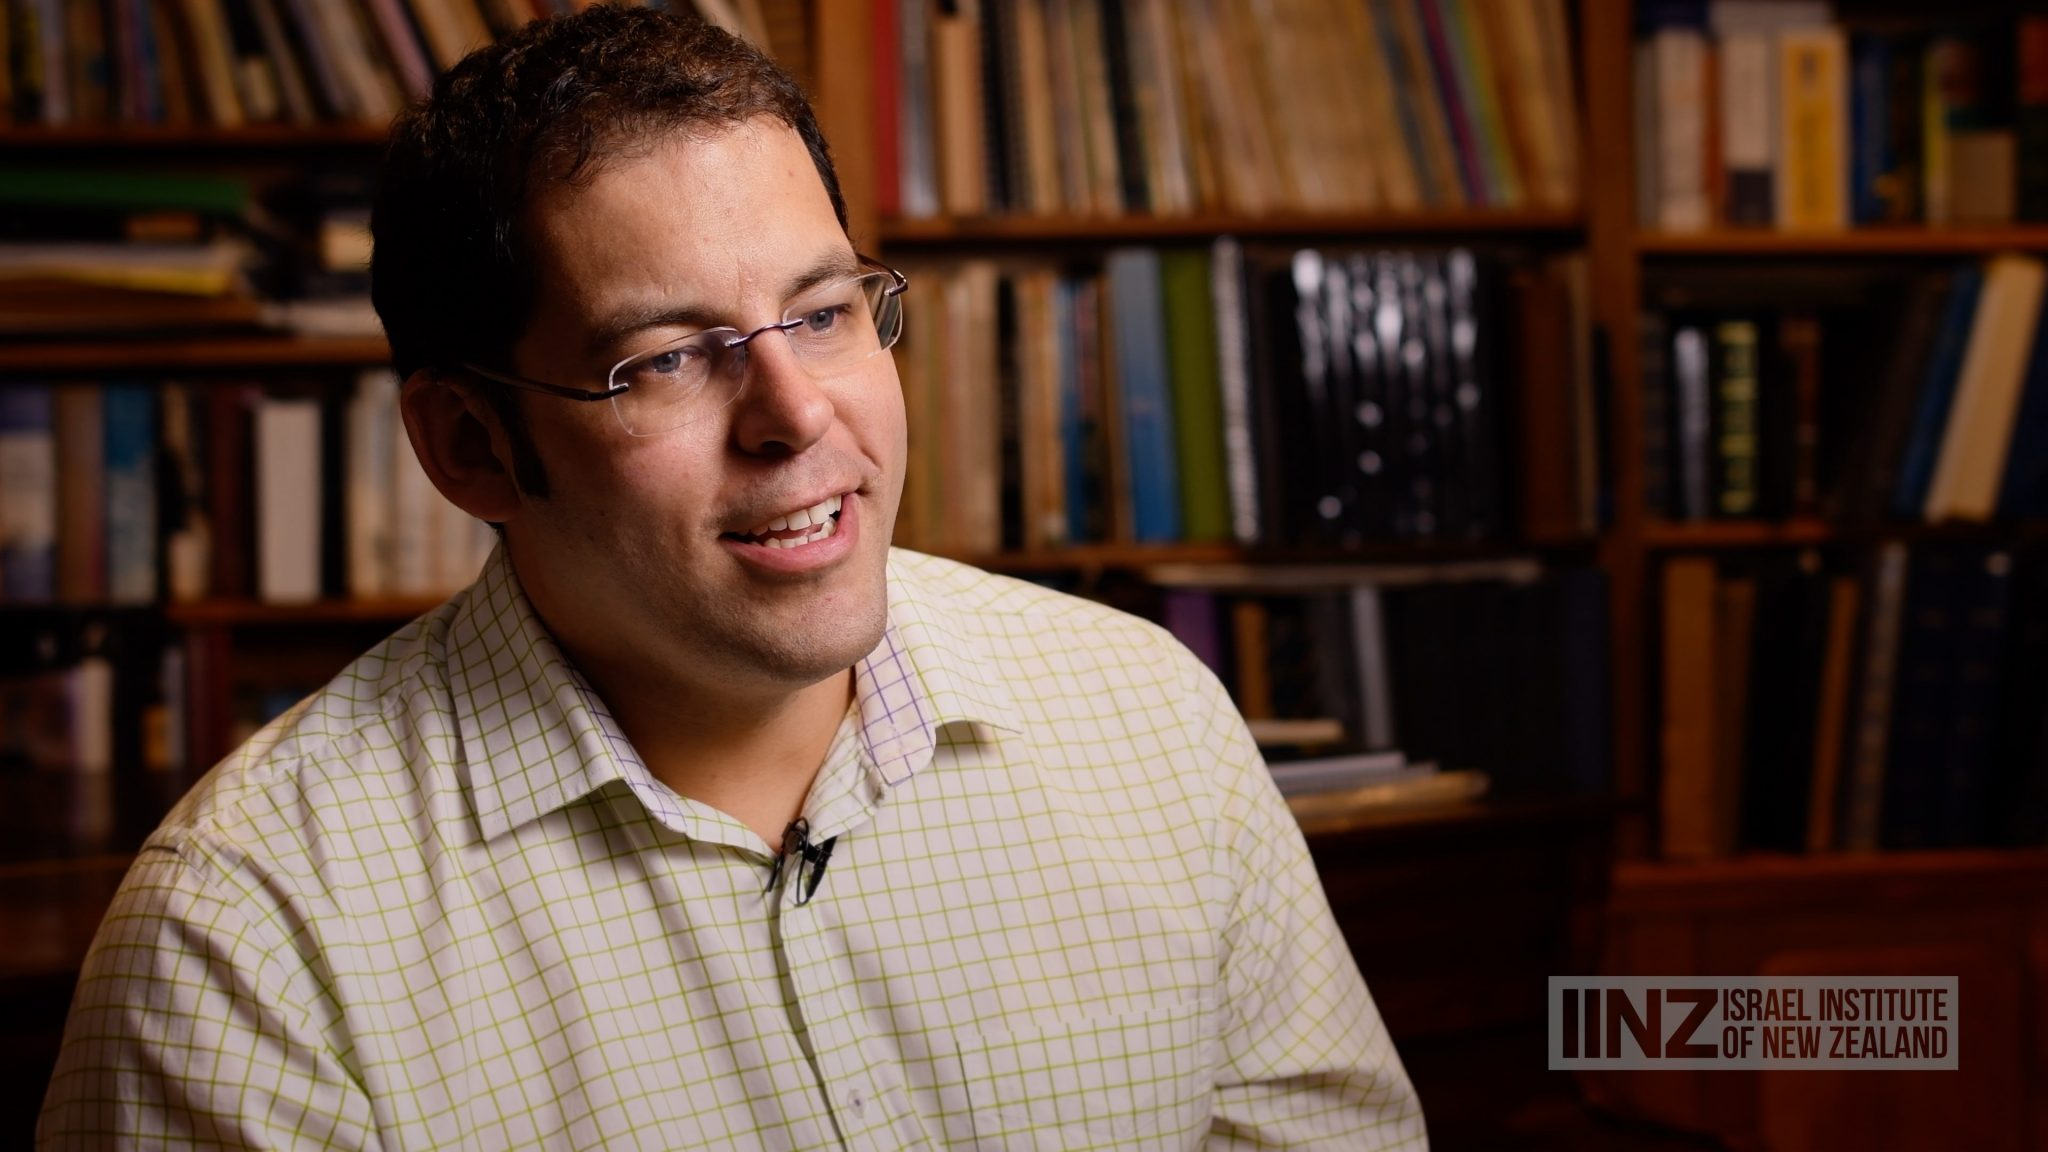 Dr David Cumin on the Israel Institute Poll